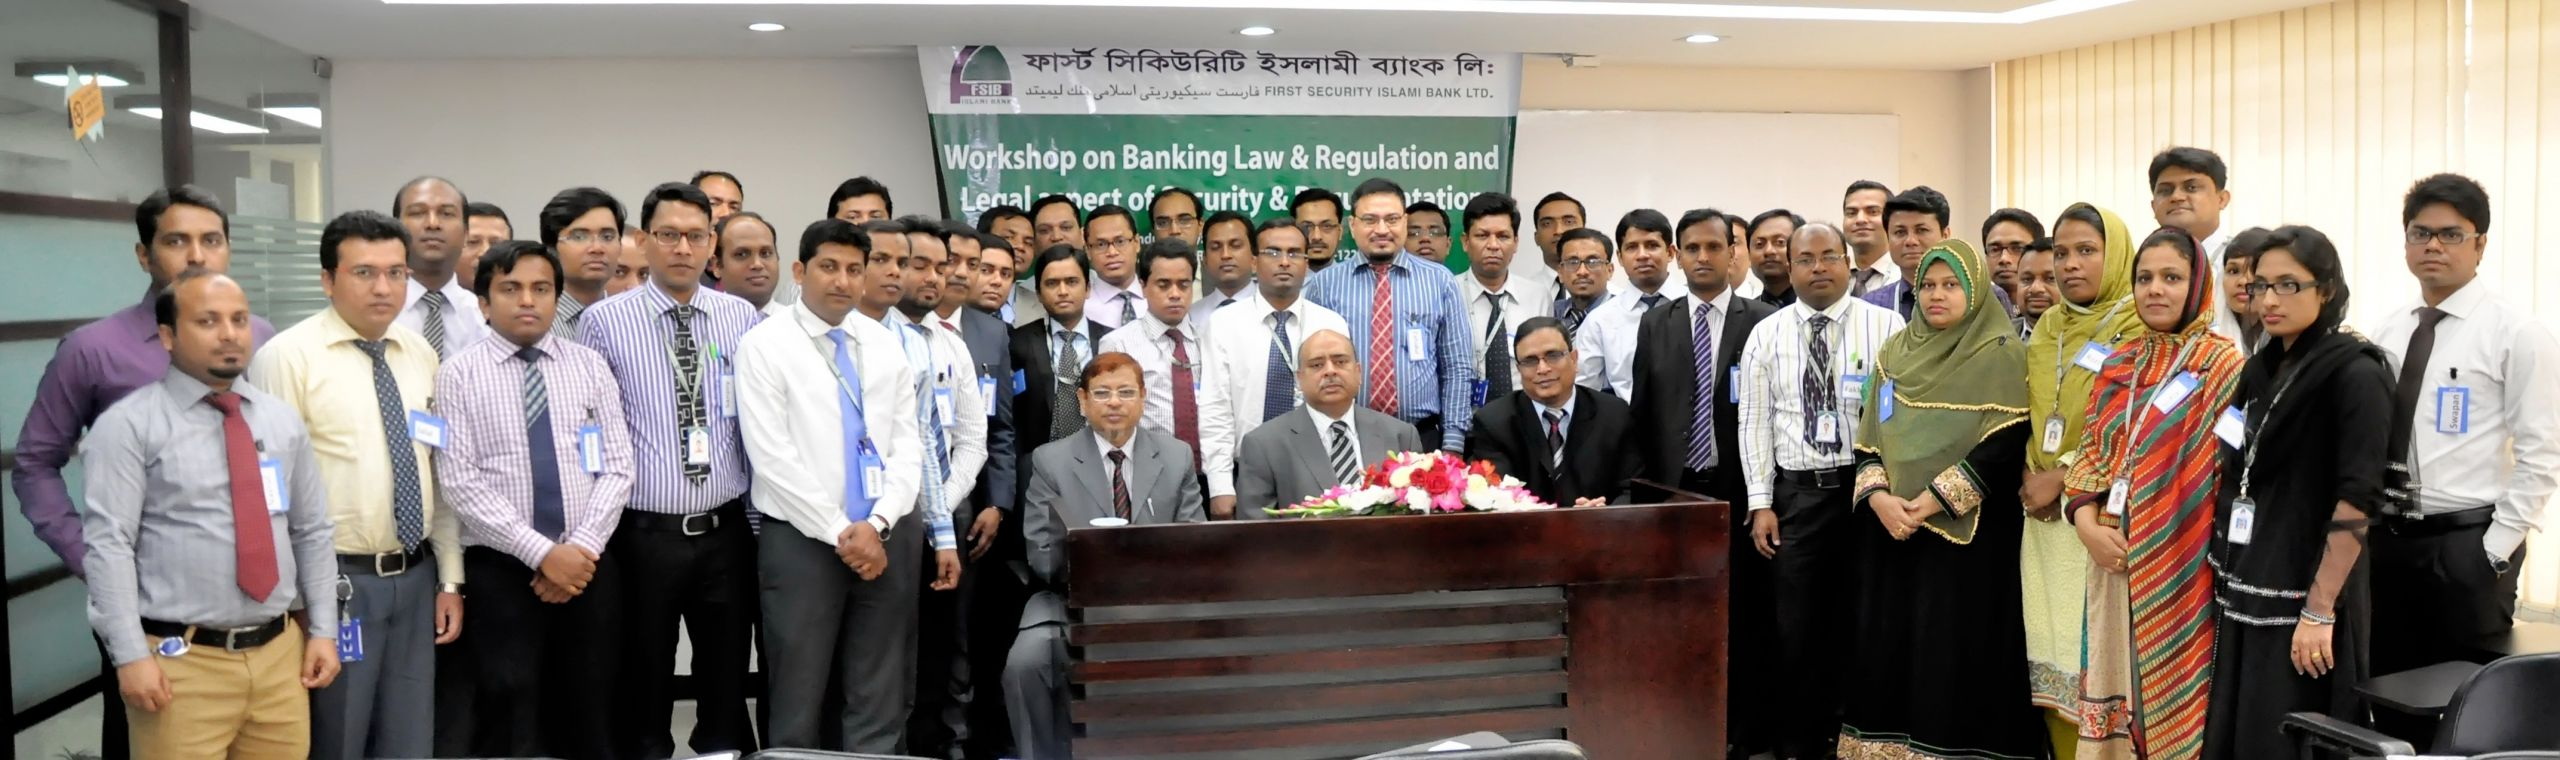 FSIBL organized Workshop on Banking Law & Regulation and Legal aspect of Security & Documentation